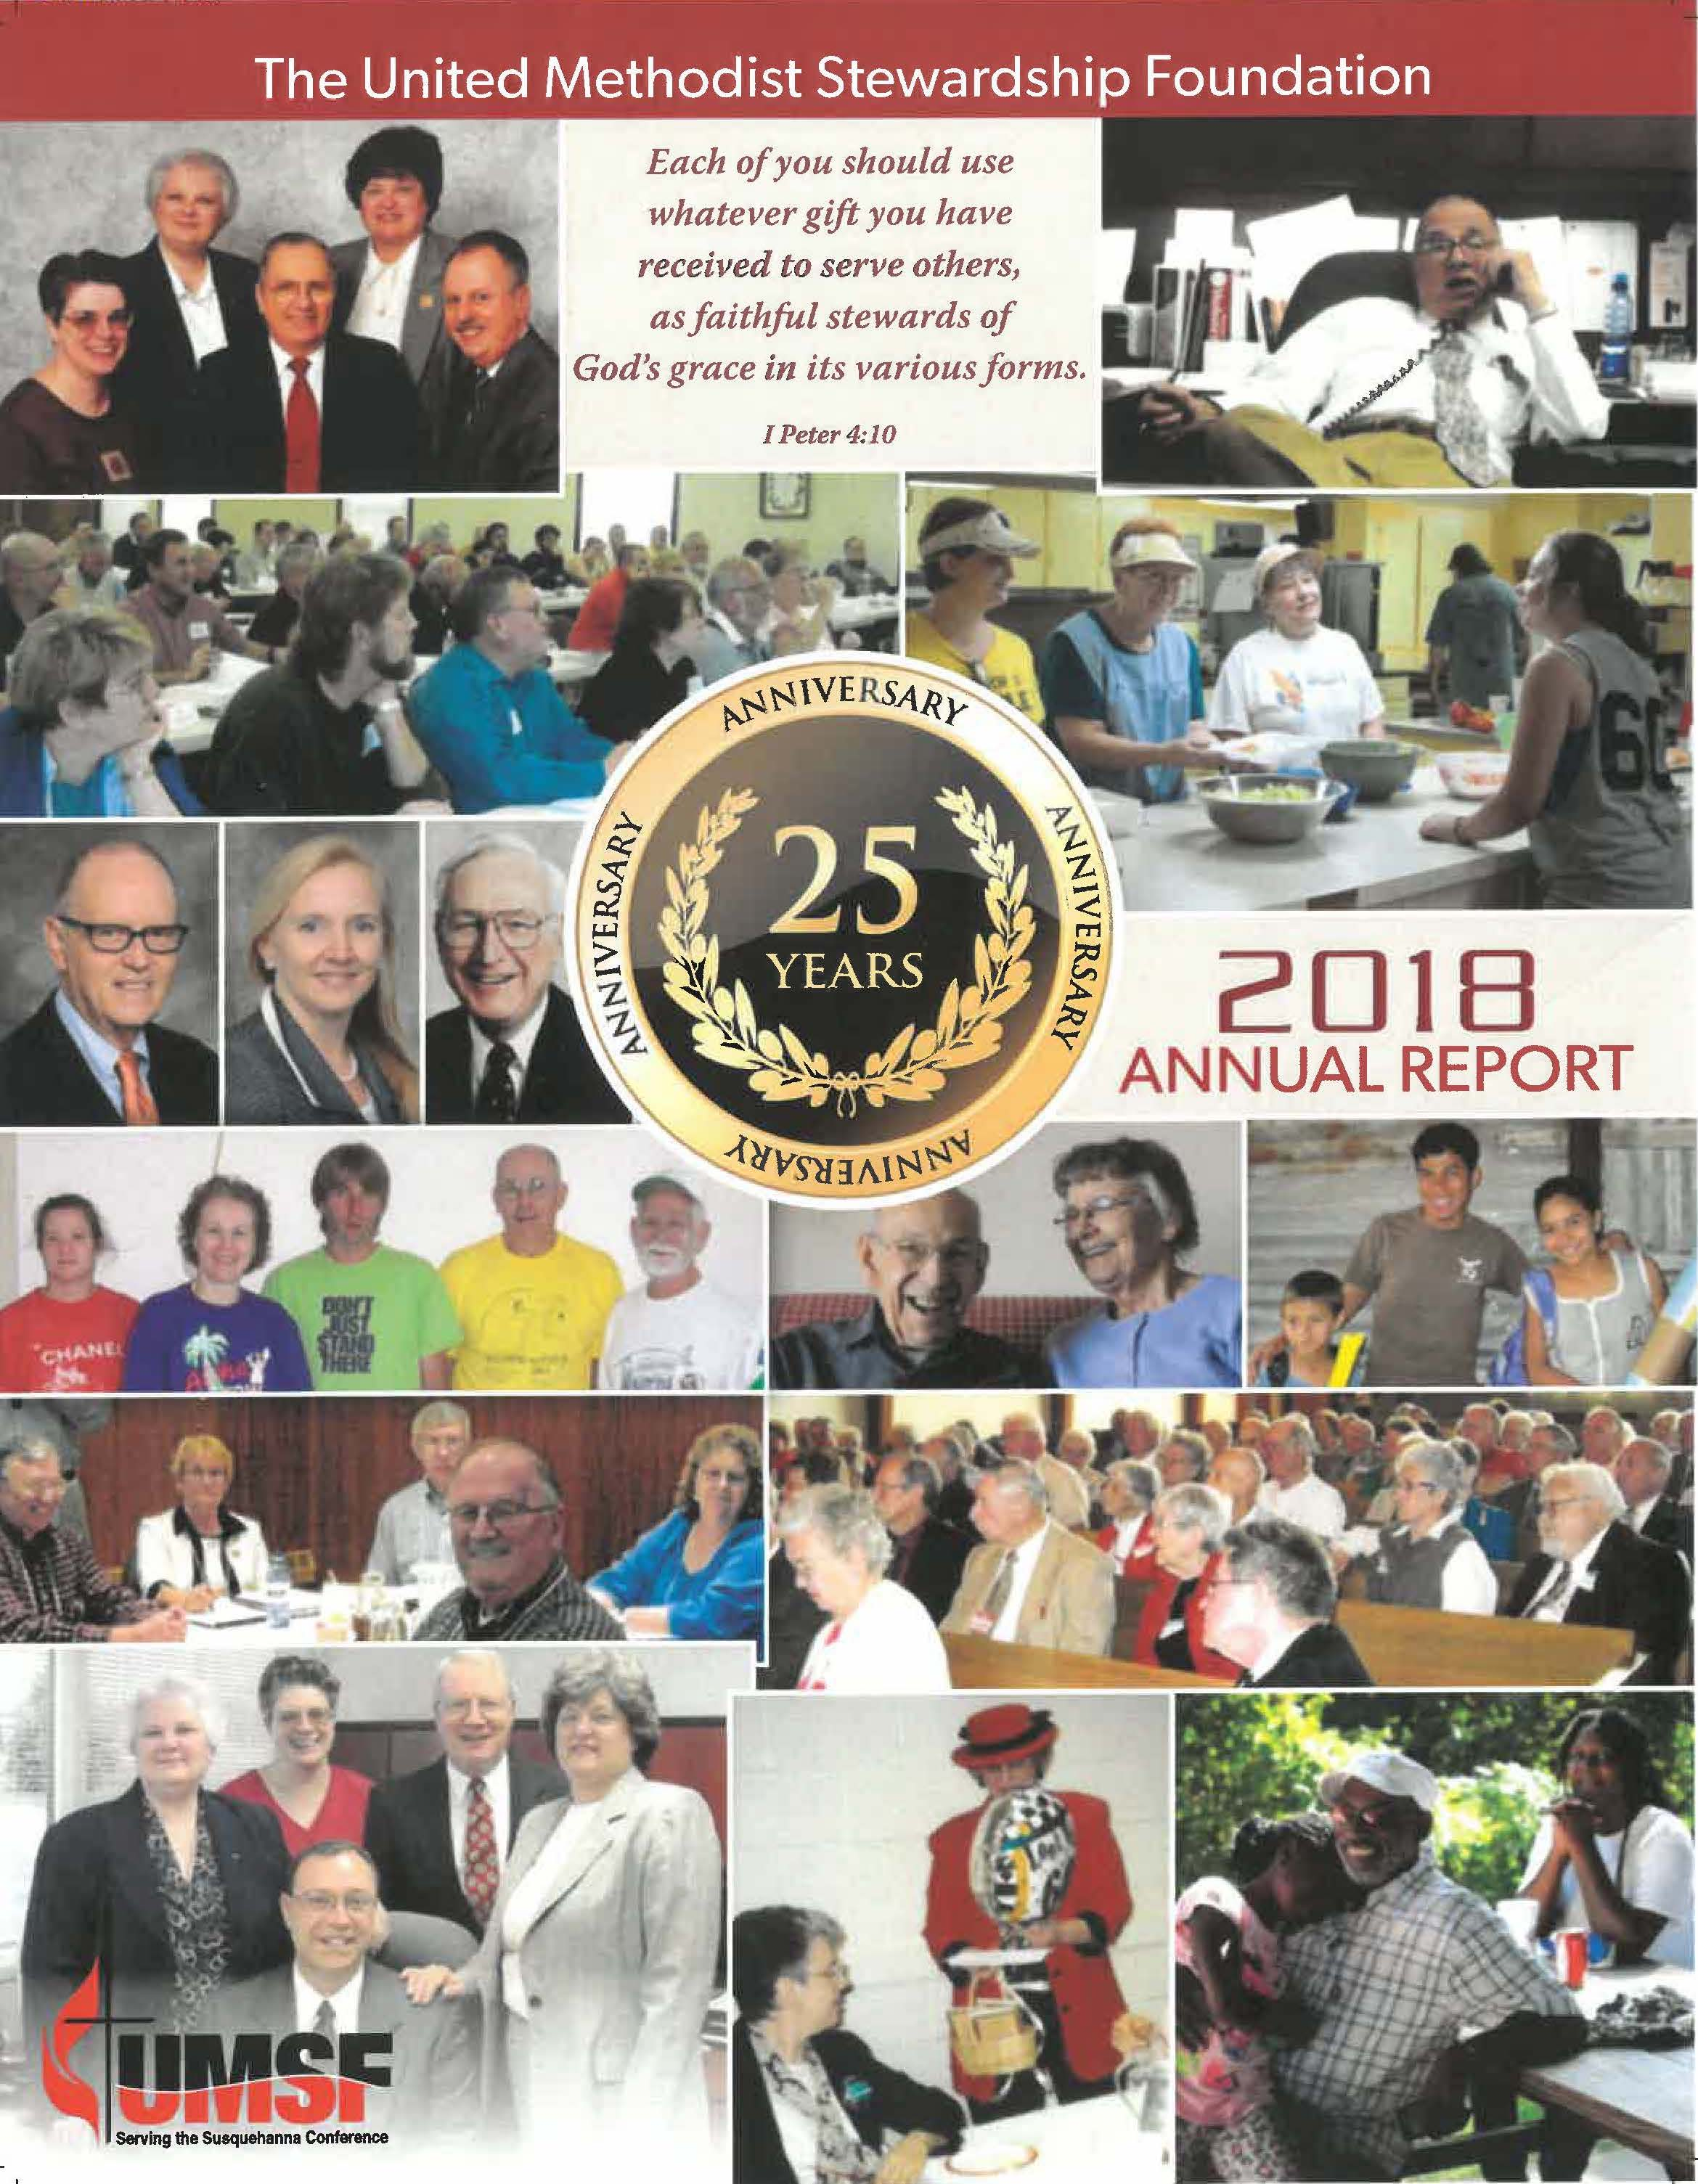 Cover of UMSF 2018 Annual Report.jpg